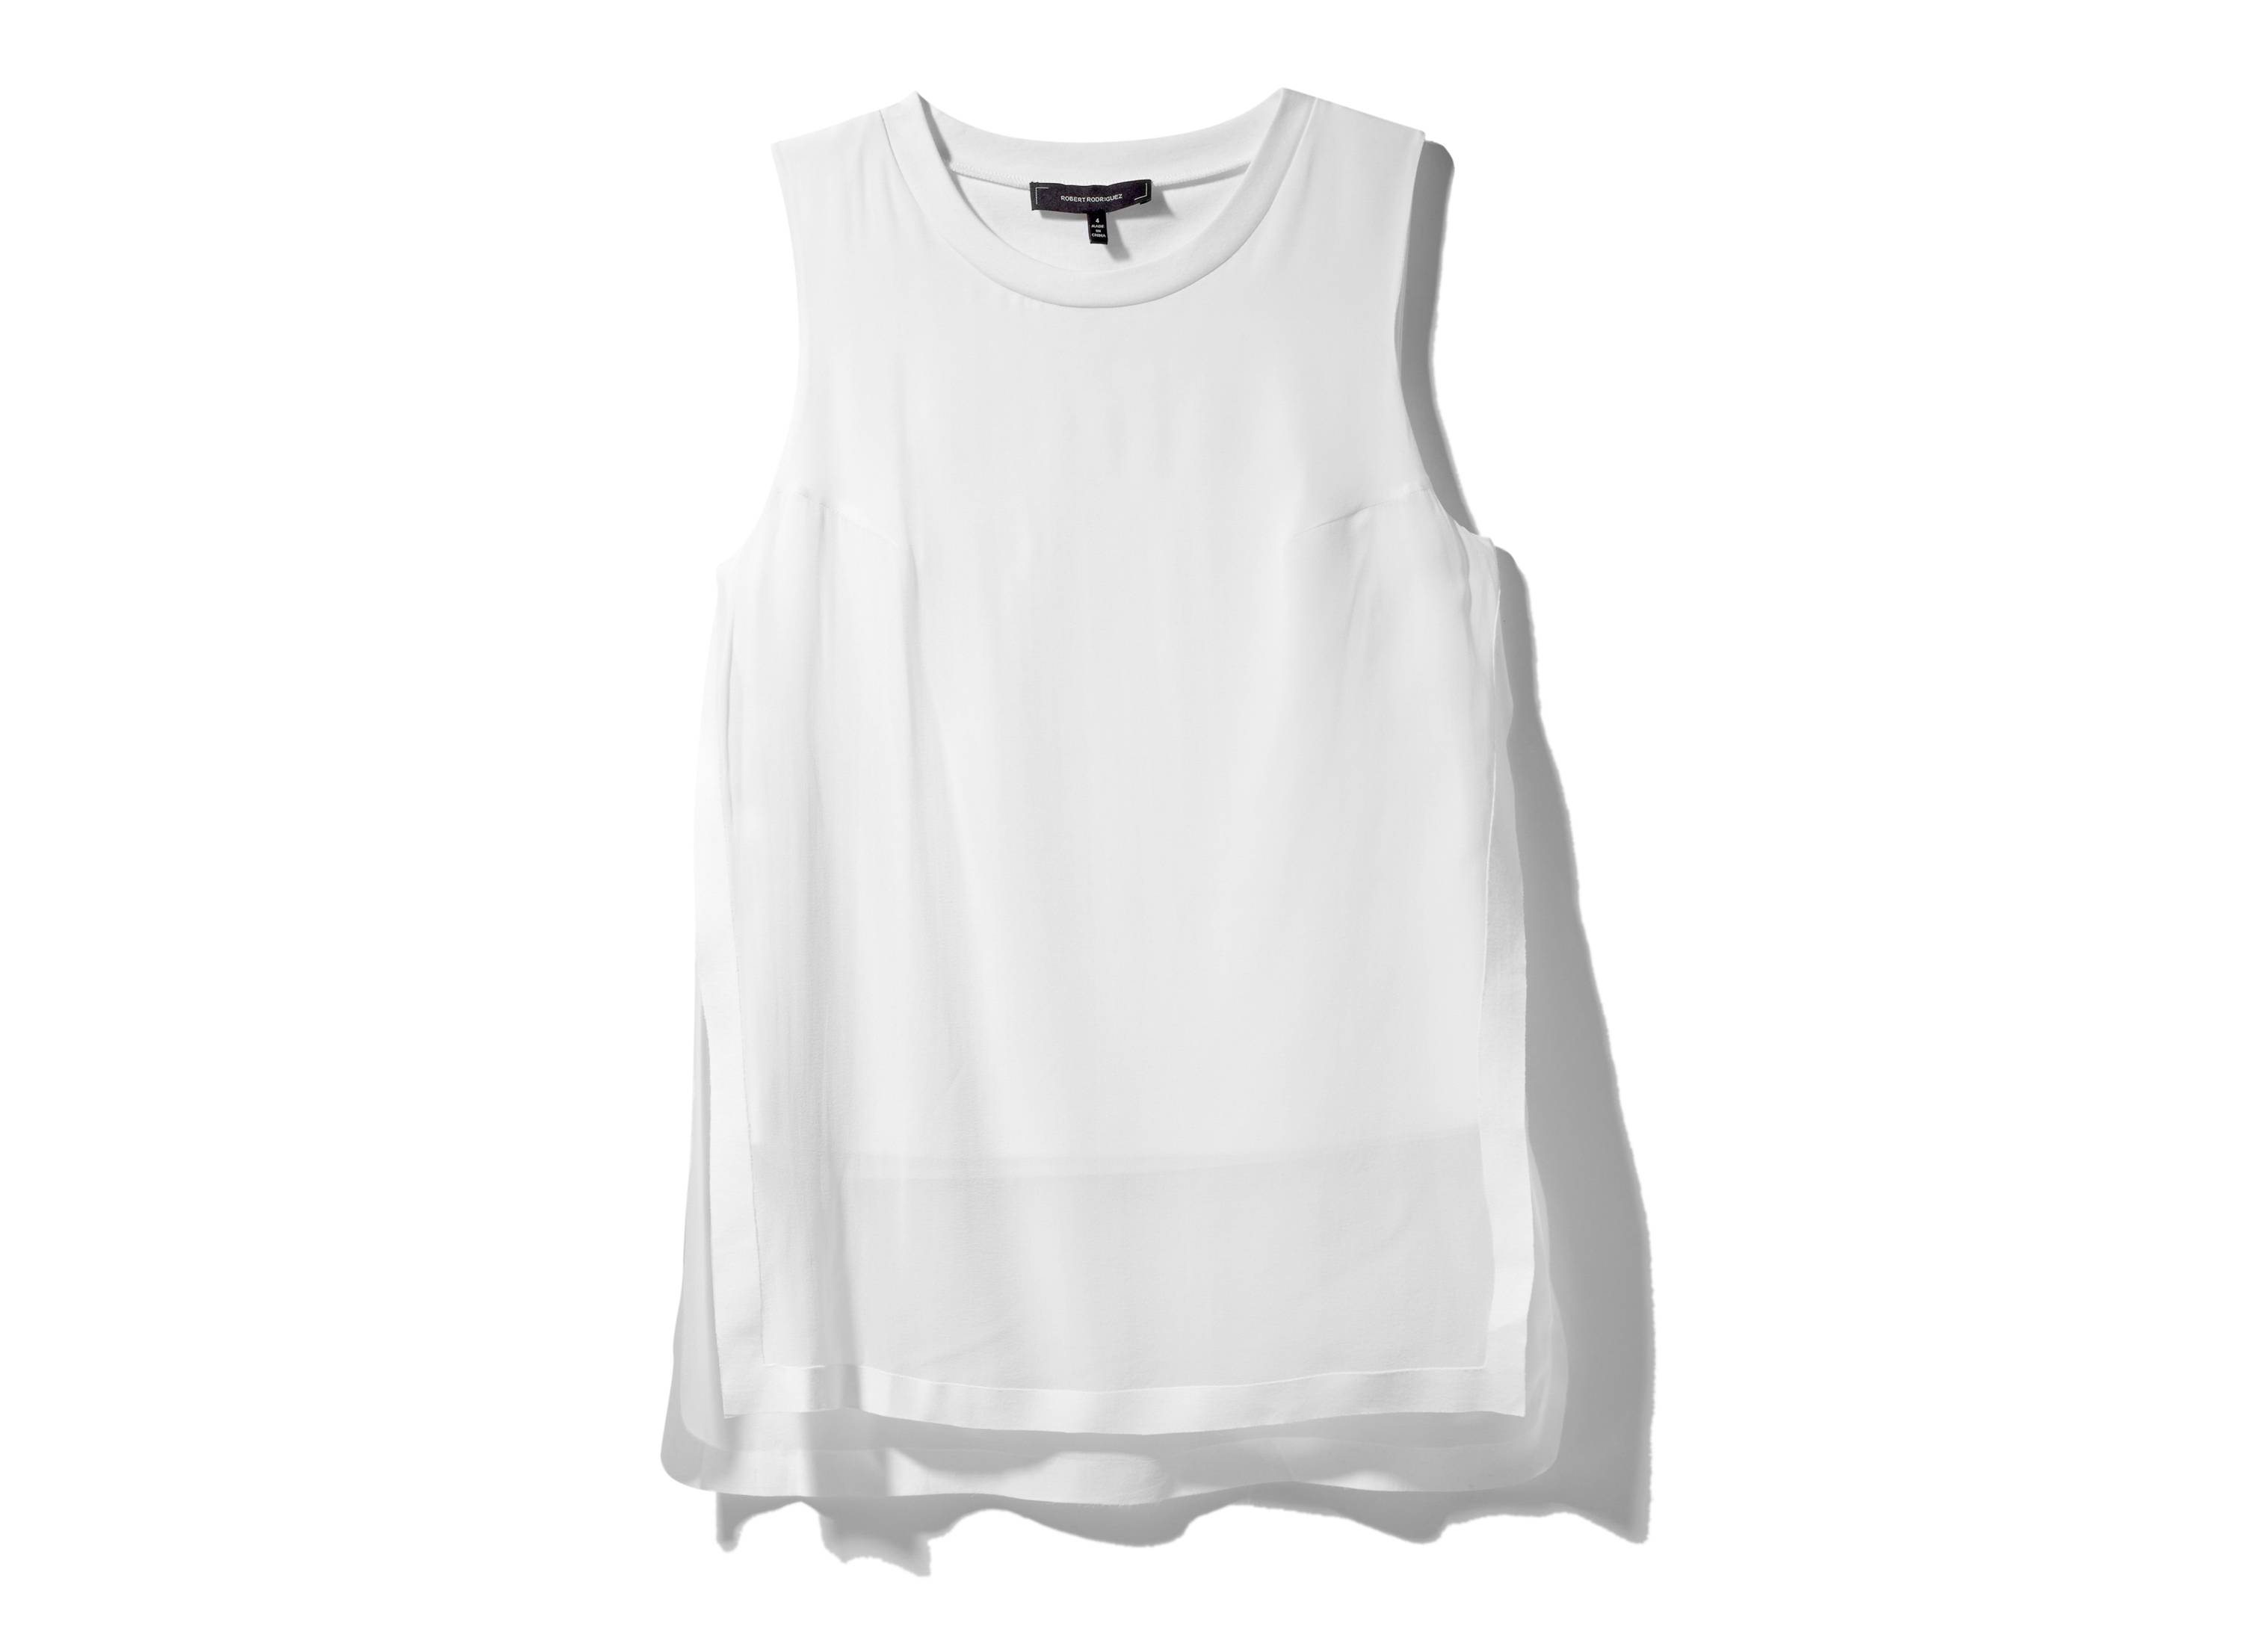 This white chiffon overlay tank top is one of the wardrobe essentials for summer, according to Dana Avidan-Cohn, a senior editor at InStyle magazine.